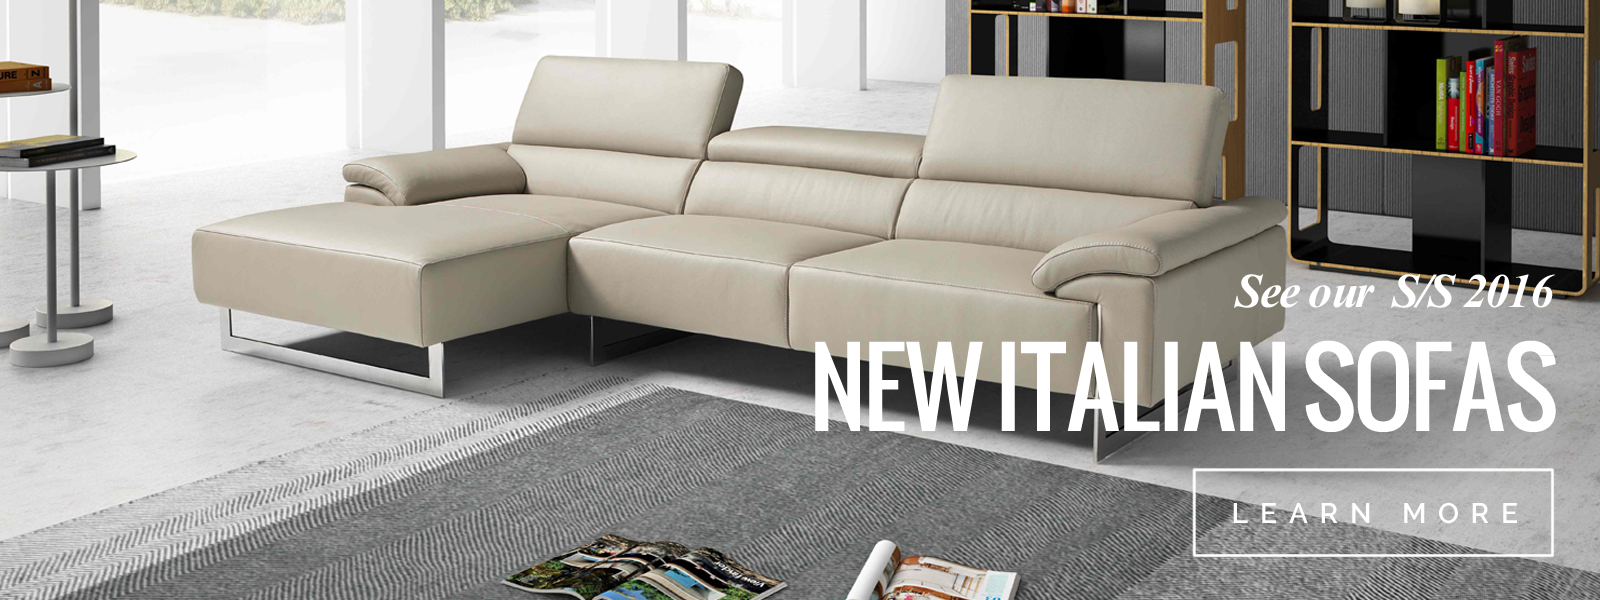 kf-web-slider-sofa